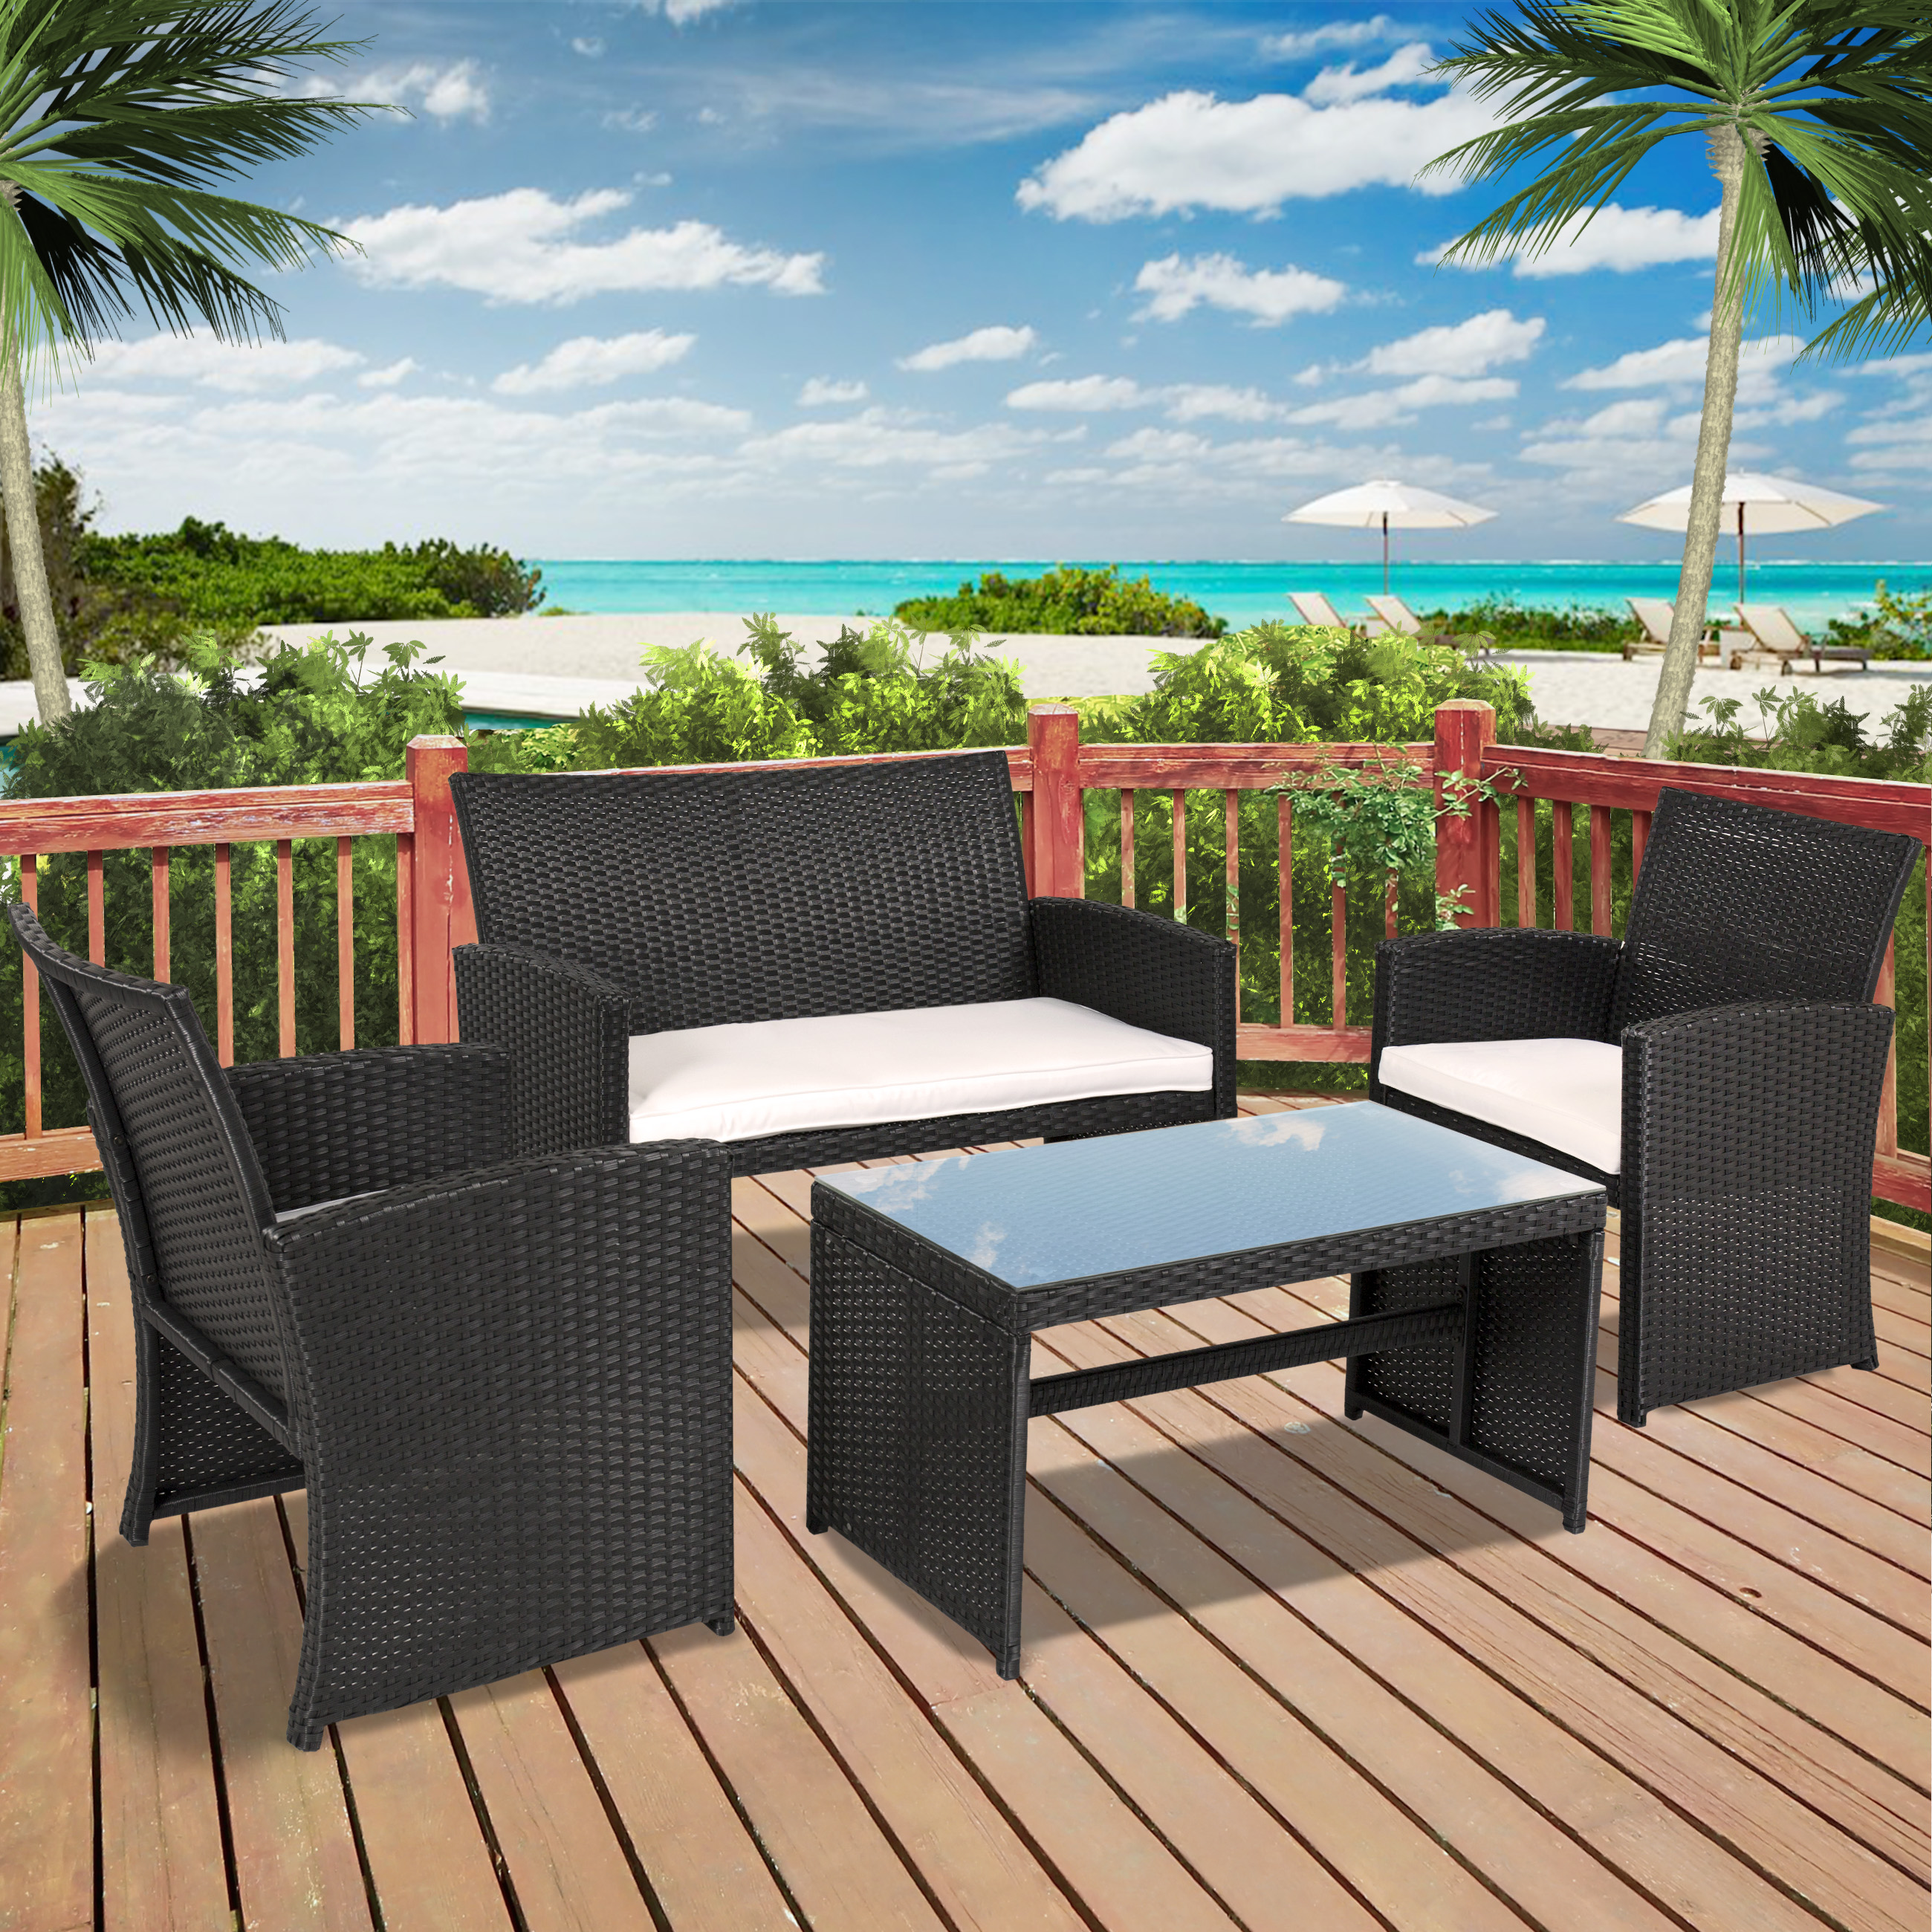 BCP 4 Piece Wicker Patio Furniture Set W/ Tempered Glass, Sofas, Table